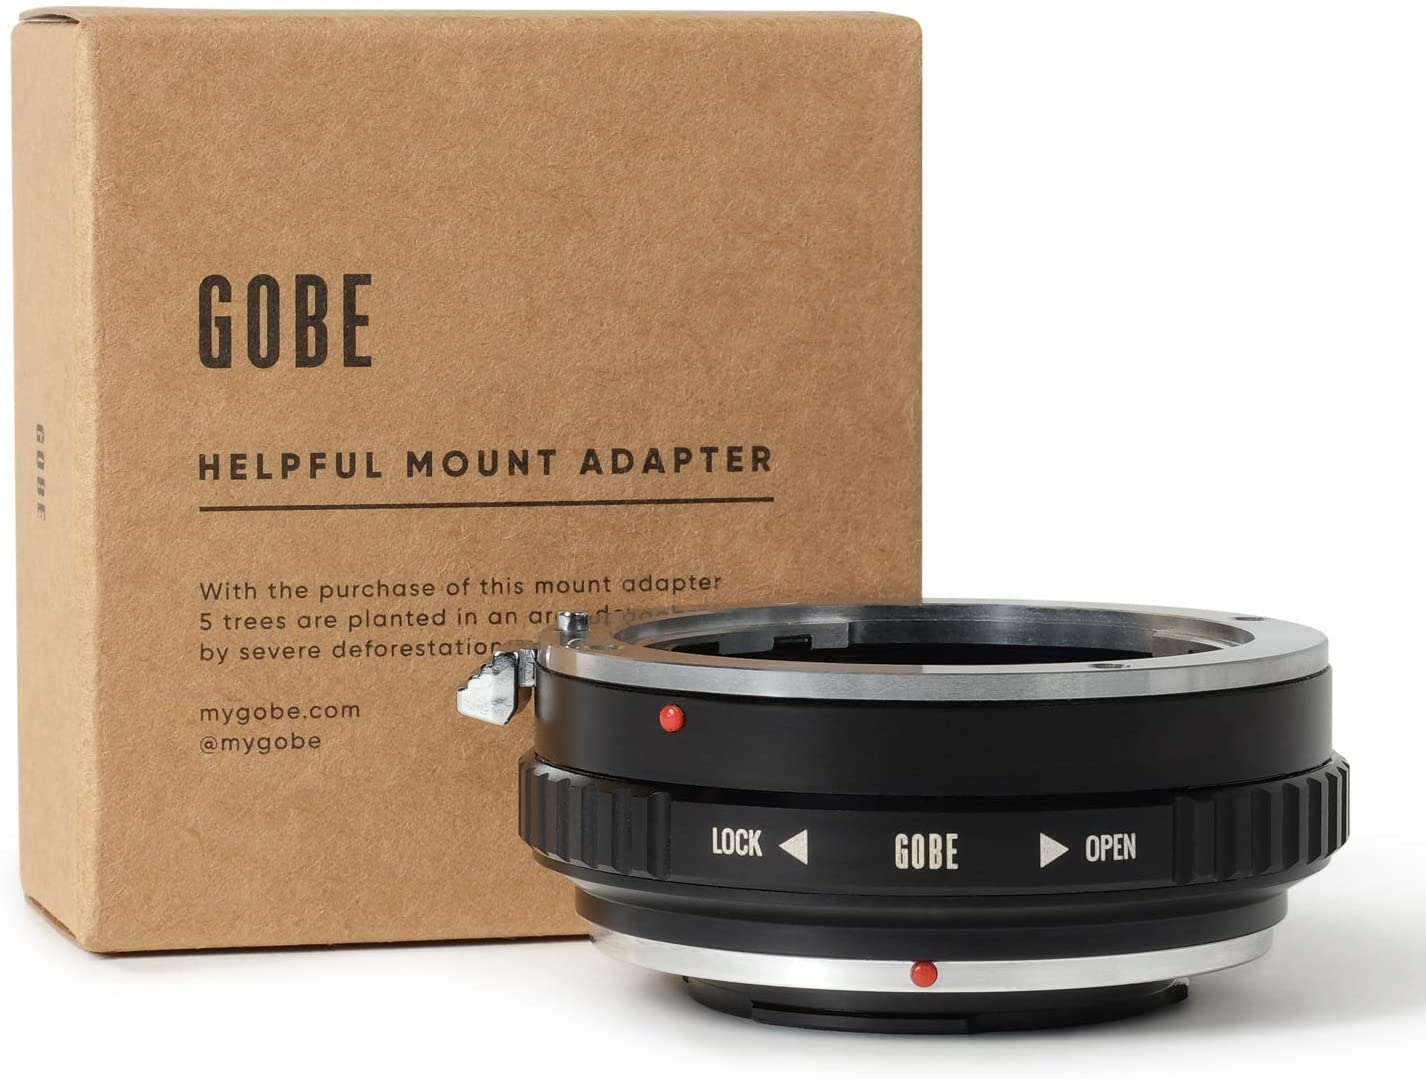 Gobe Lens Mount Adapter: Compatible with Sony A (Minolta AF) Lens and Micro Four Thirds (M4/3) Camera Body